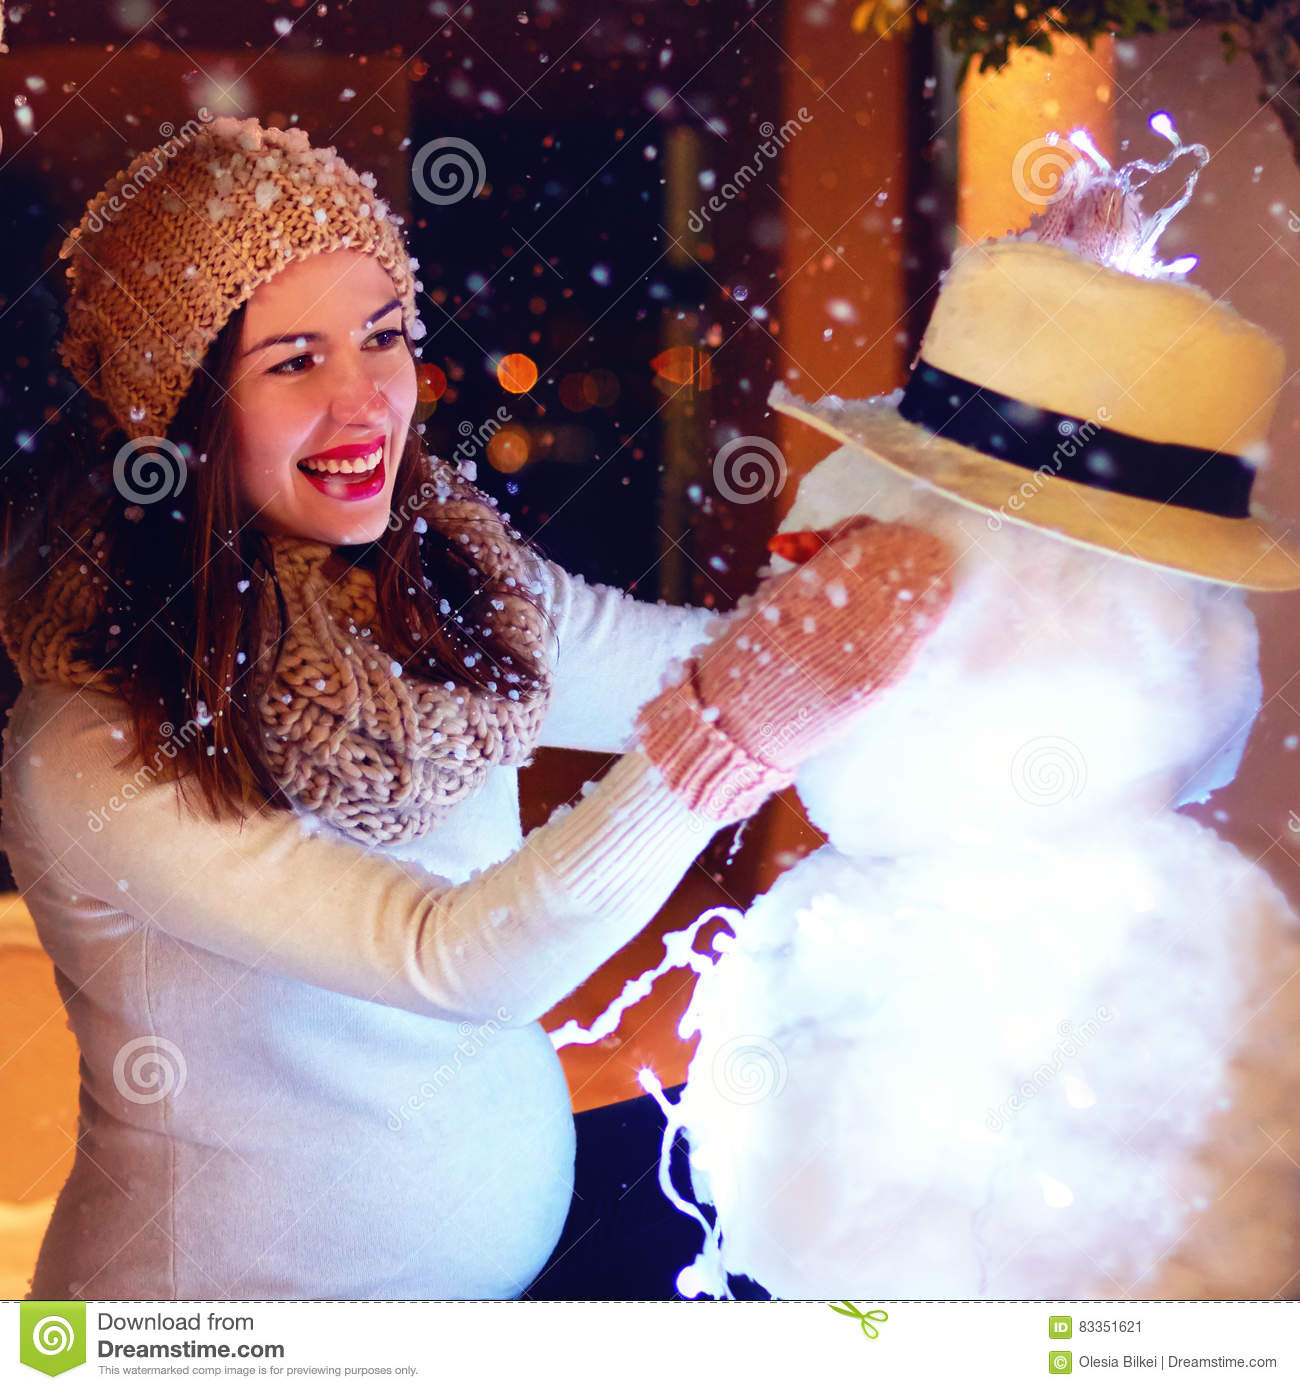 Beautiful happy pregnant woman making snowman under magical winter snow